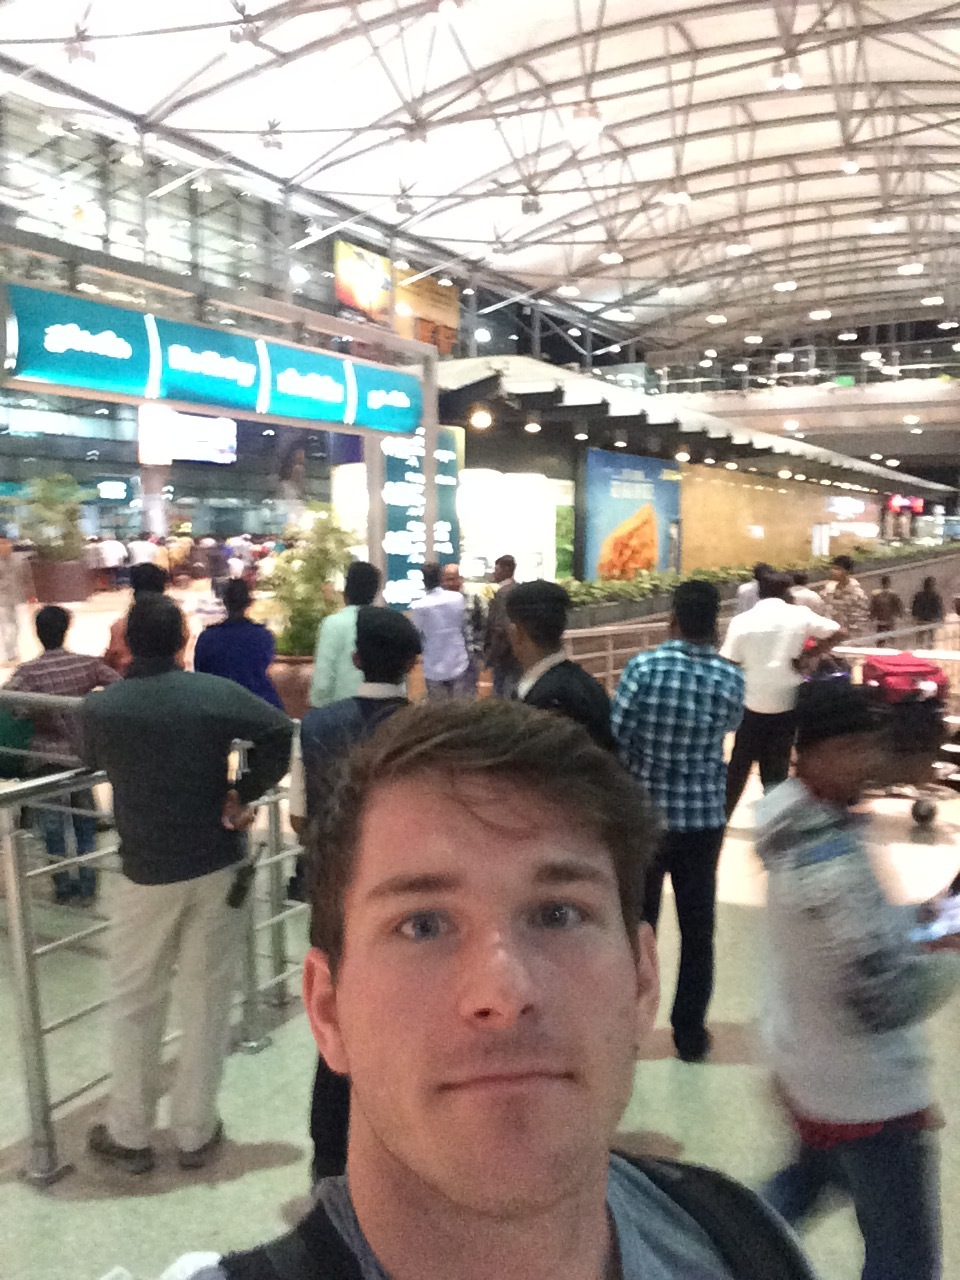 - You'll have to excuse the potato quality photo. This photo was taken at 4am in the Hyderabad airport as I was looking for the showers and the location to get my boarding passes.